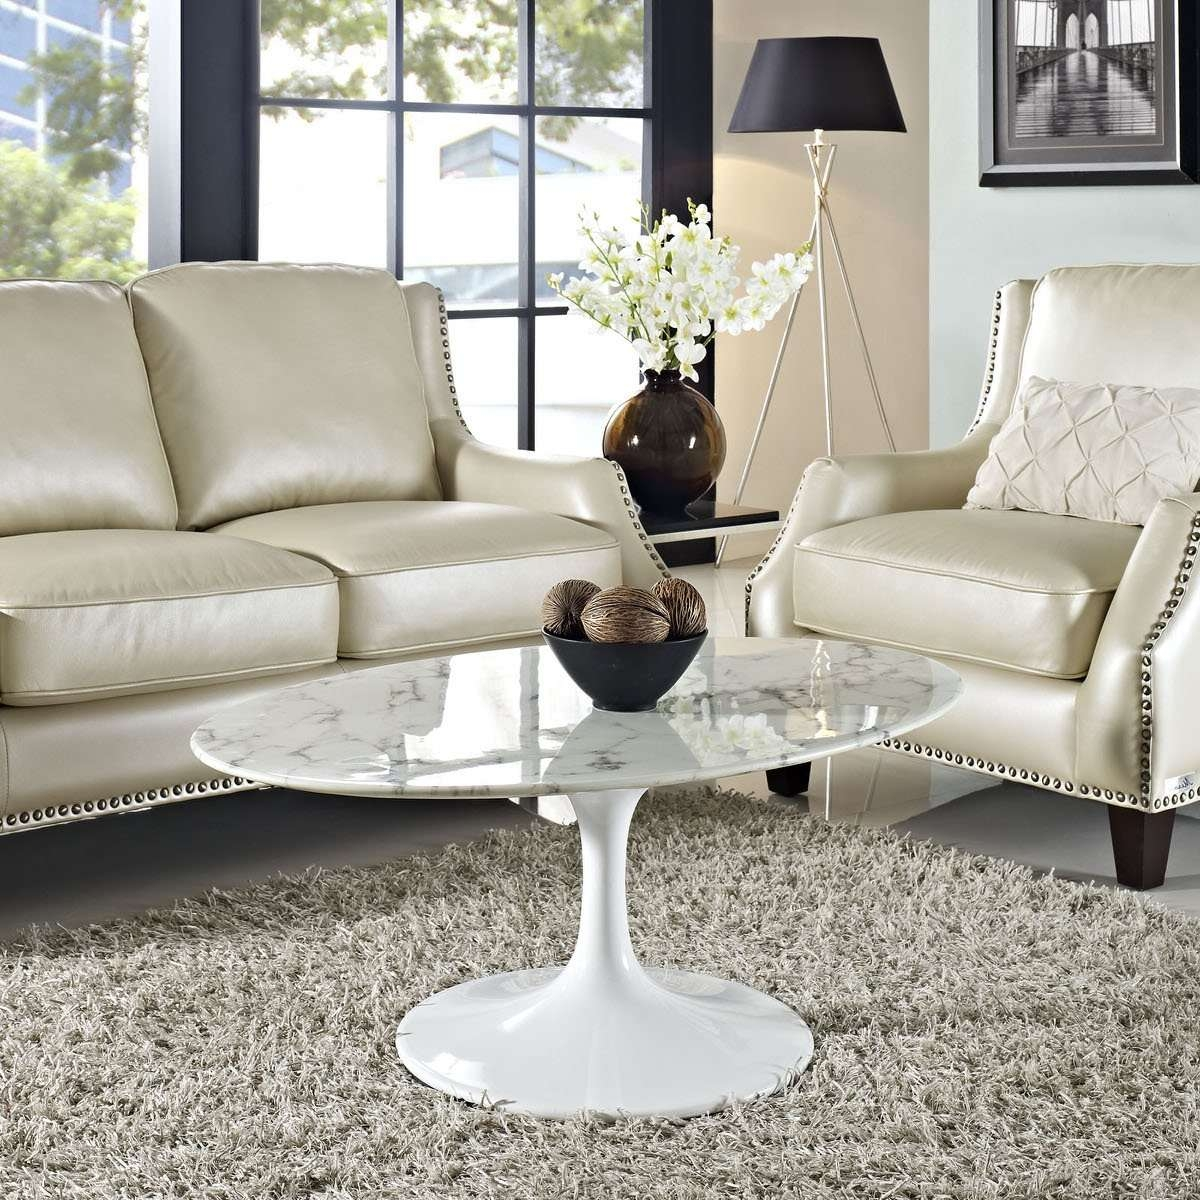 Newest Oval Shaped Coffee Tables Throughout Lippa 42 Inch Oval Shaped Artificial Marble Coffee Table White (View 13 of 20)